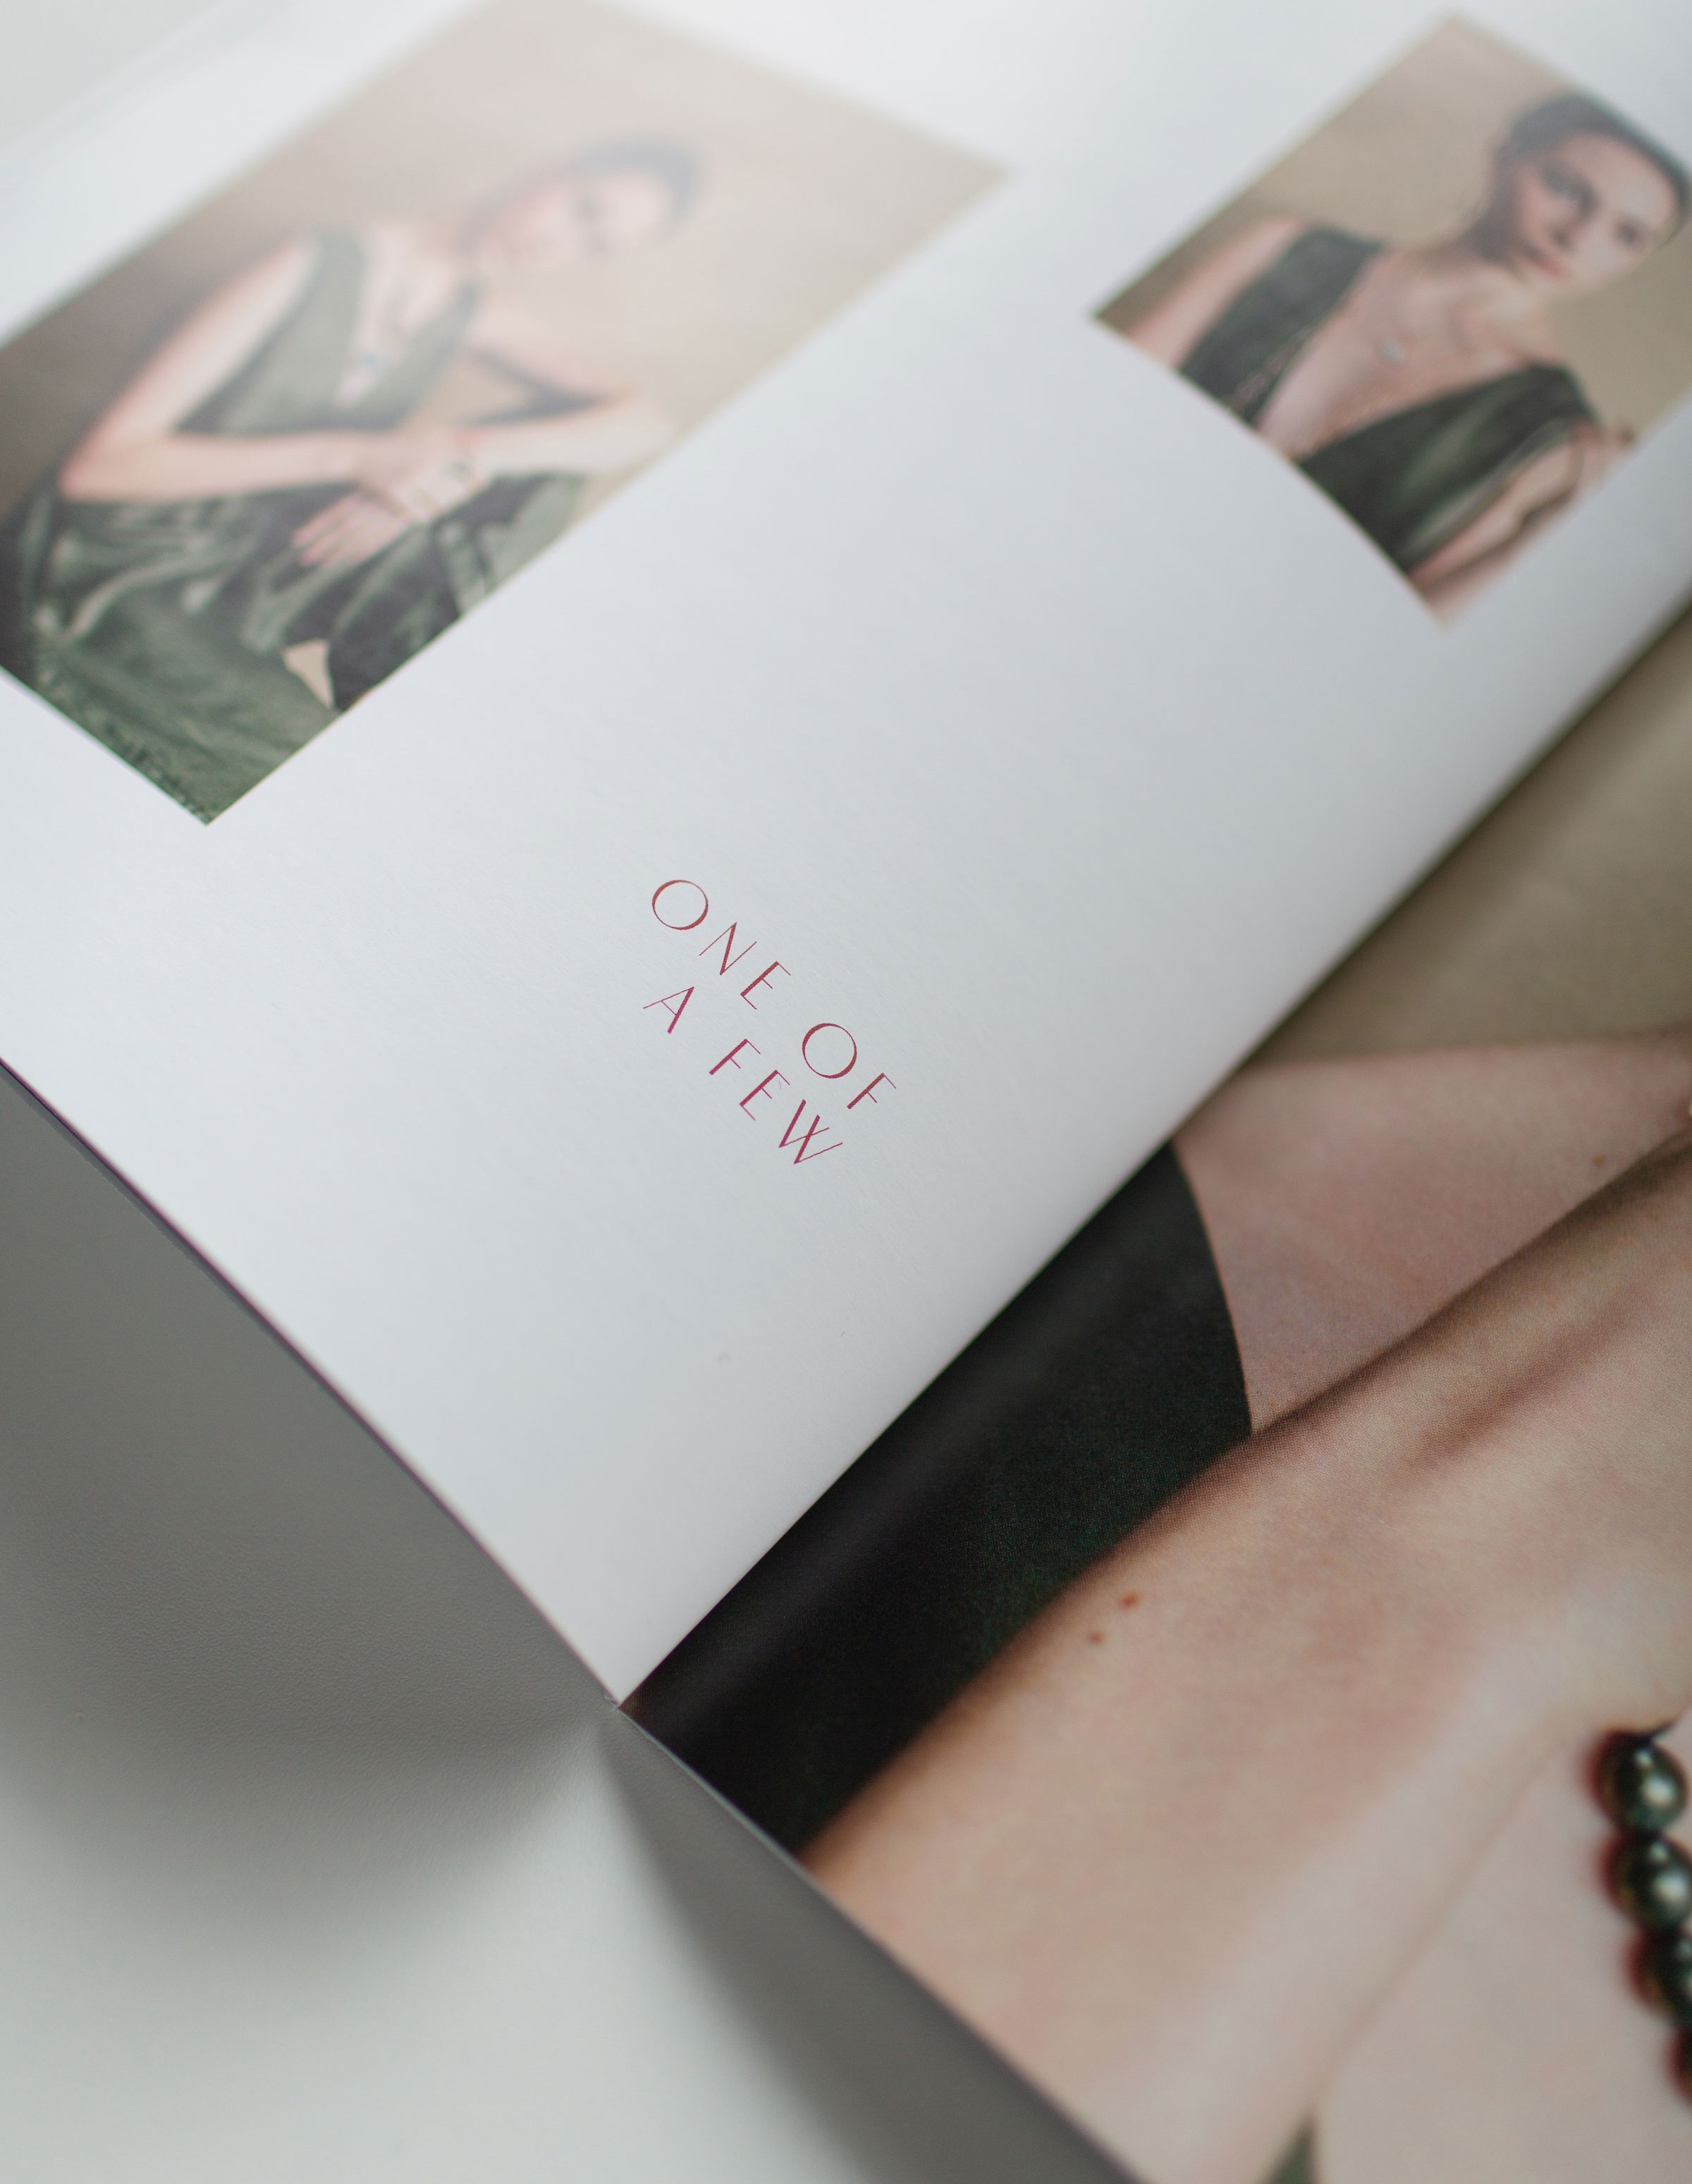 Irit Sorokin Jewellery printed Lookbook Layout and Design | www.alicia-carvalho.com